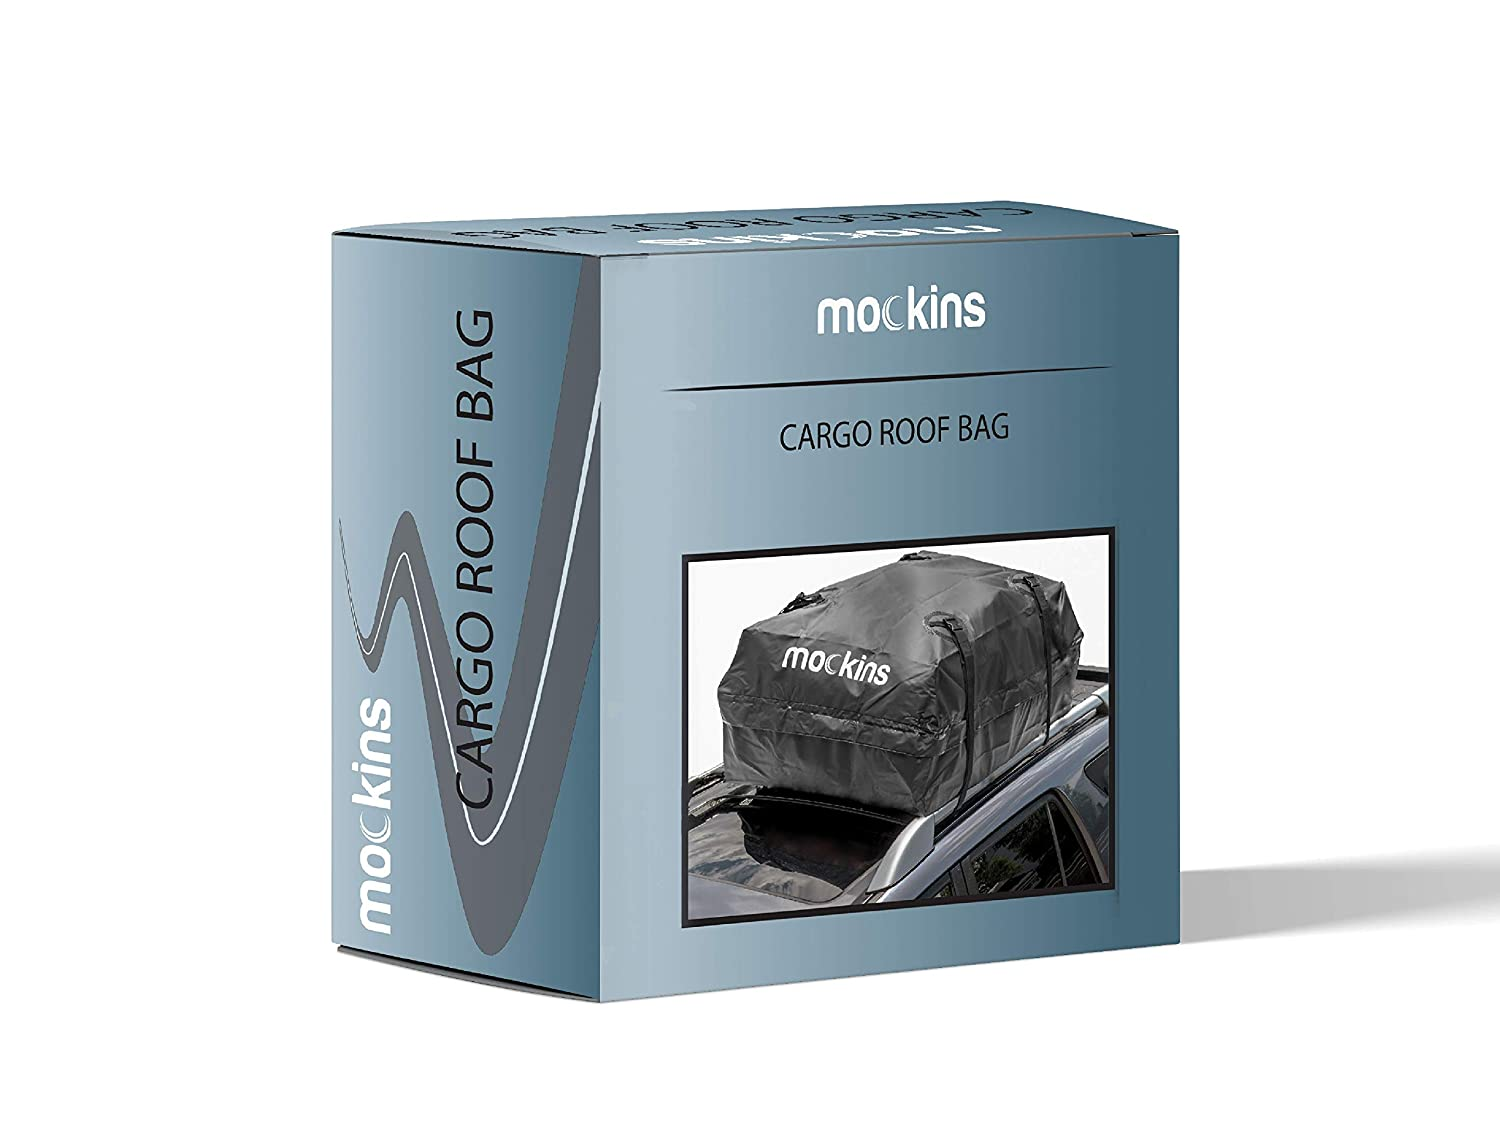 Mockins Waterproof Cargo Roof Bag The Car Top Carrier Bag is Made from Heavy Duty Abrasion Resistant Vinyl and is 44 Long X 34 Wide X 18 High Giving You 15 Cu.ft.Capacity /… /… /… /… /… /… 4350438920